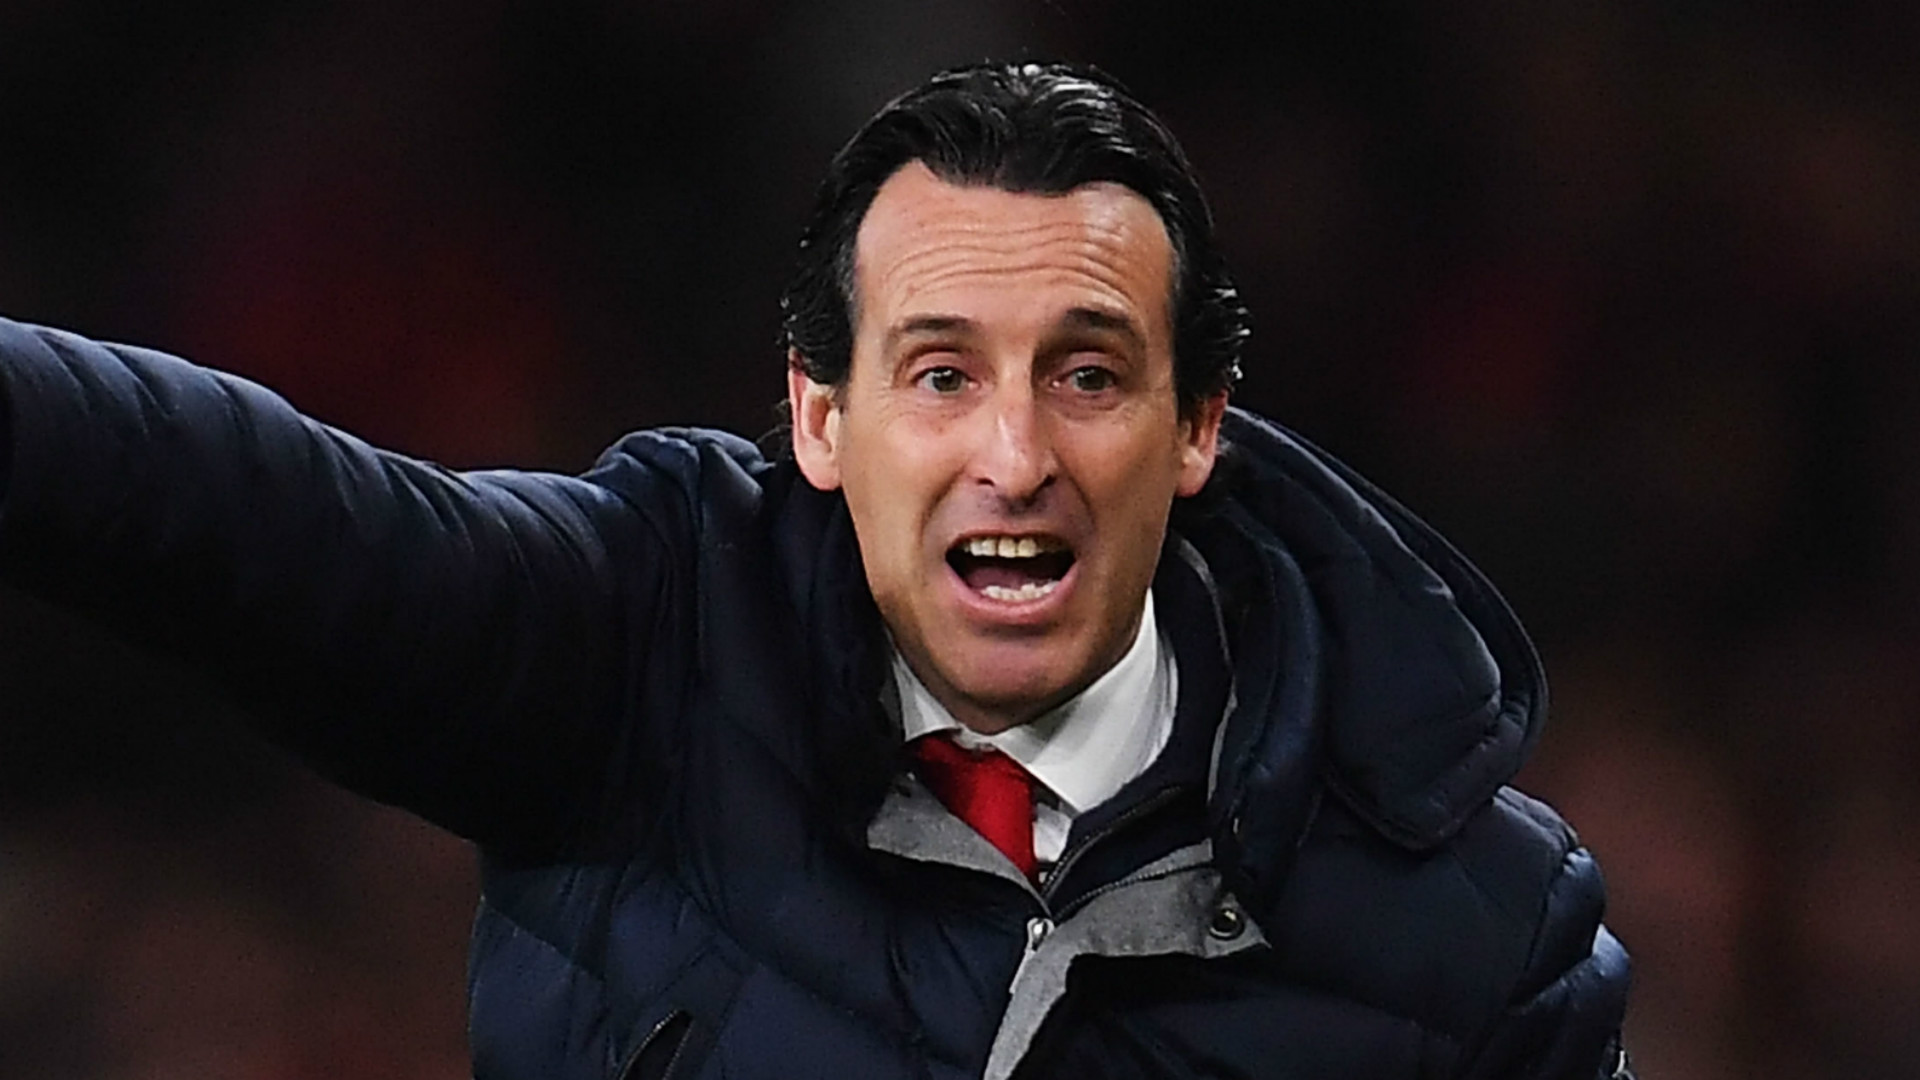 Arsenal manager Unai Emery reveals real reason why he replaced Arsene Wenger